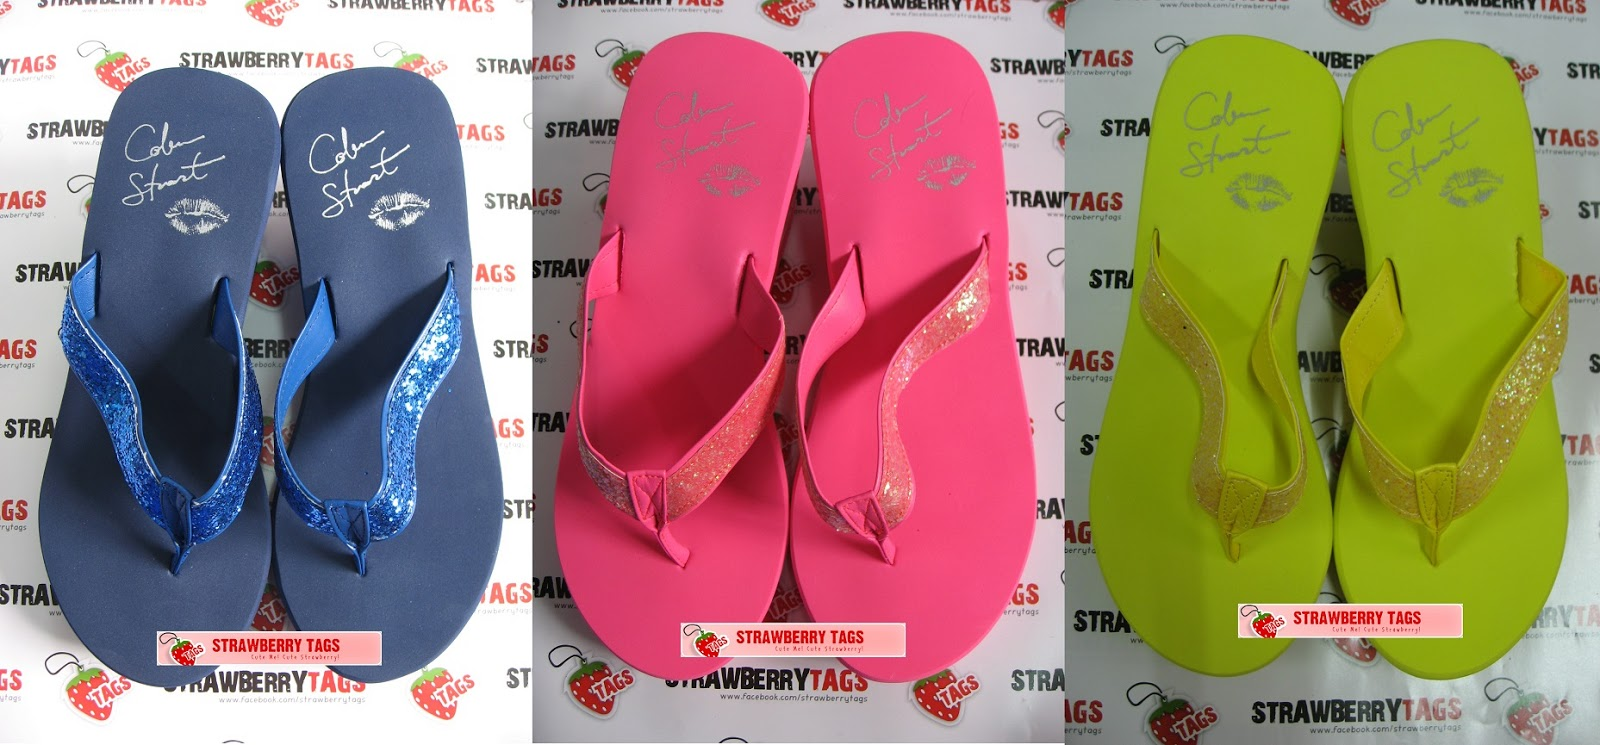 Strawberry Tags Colin Stuart Glitter Wedge Flip-Flop -3775